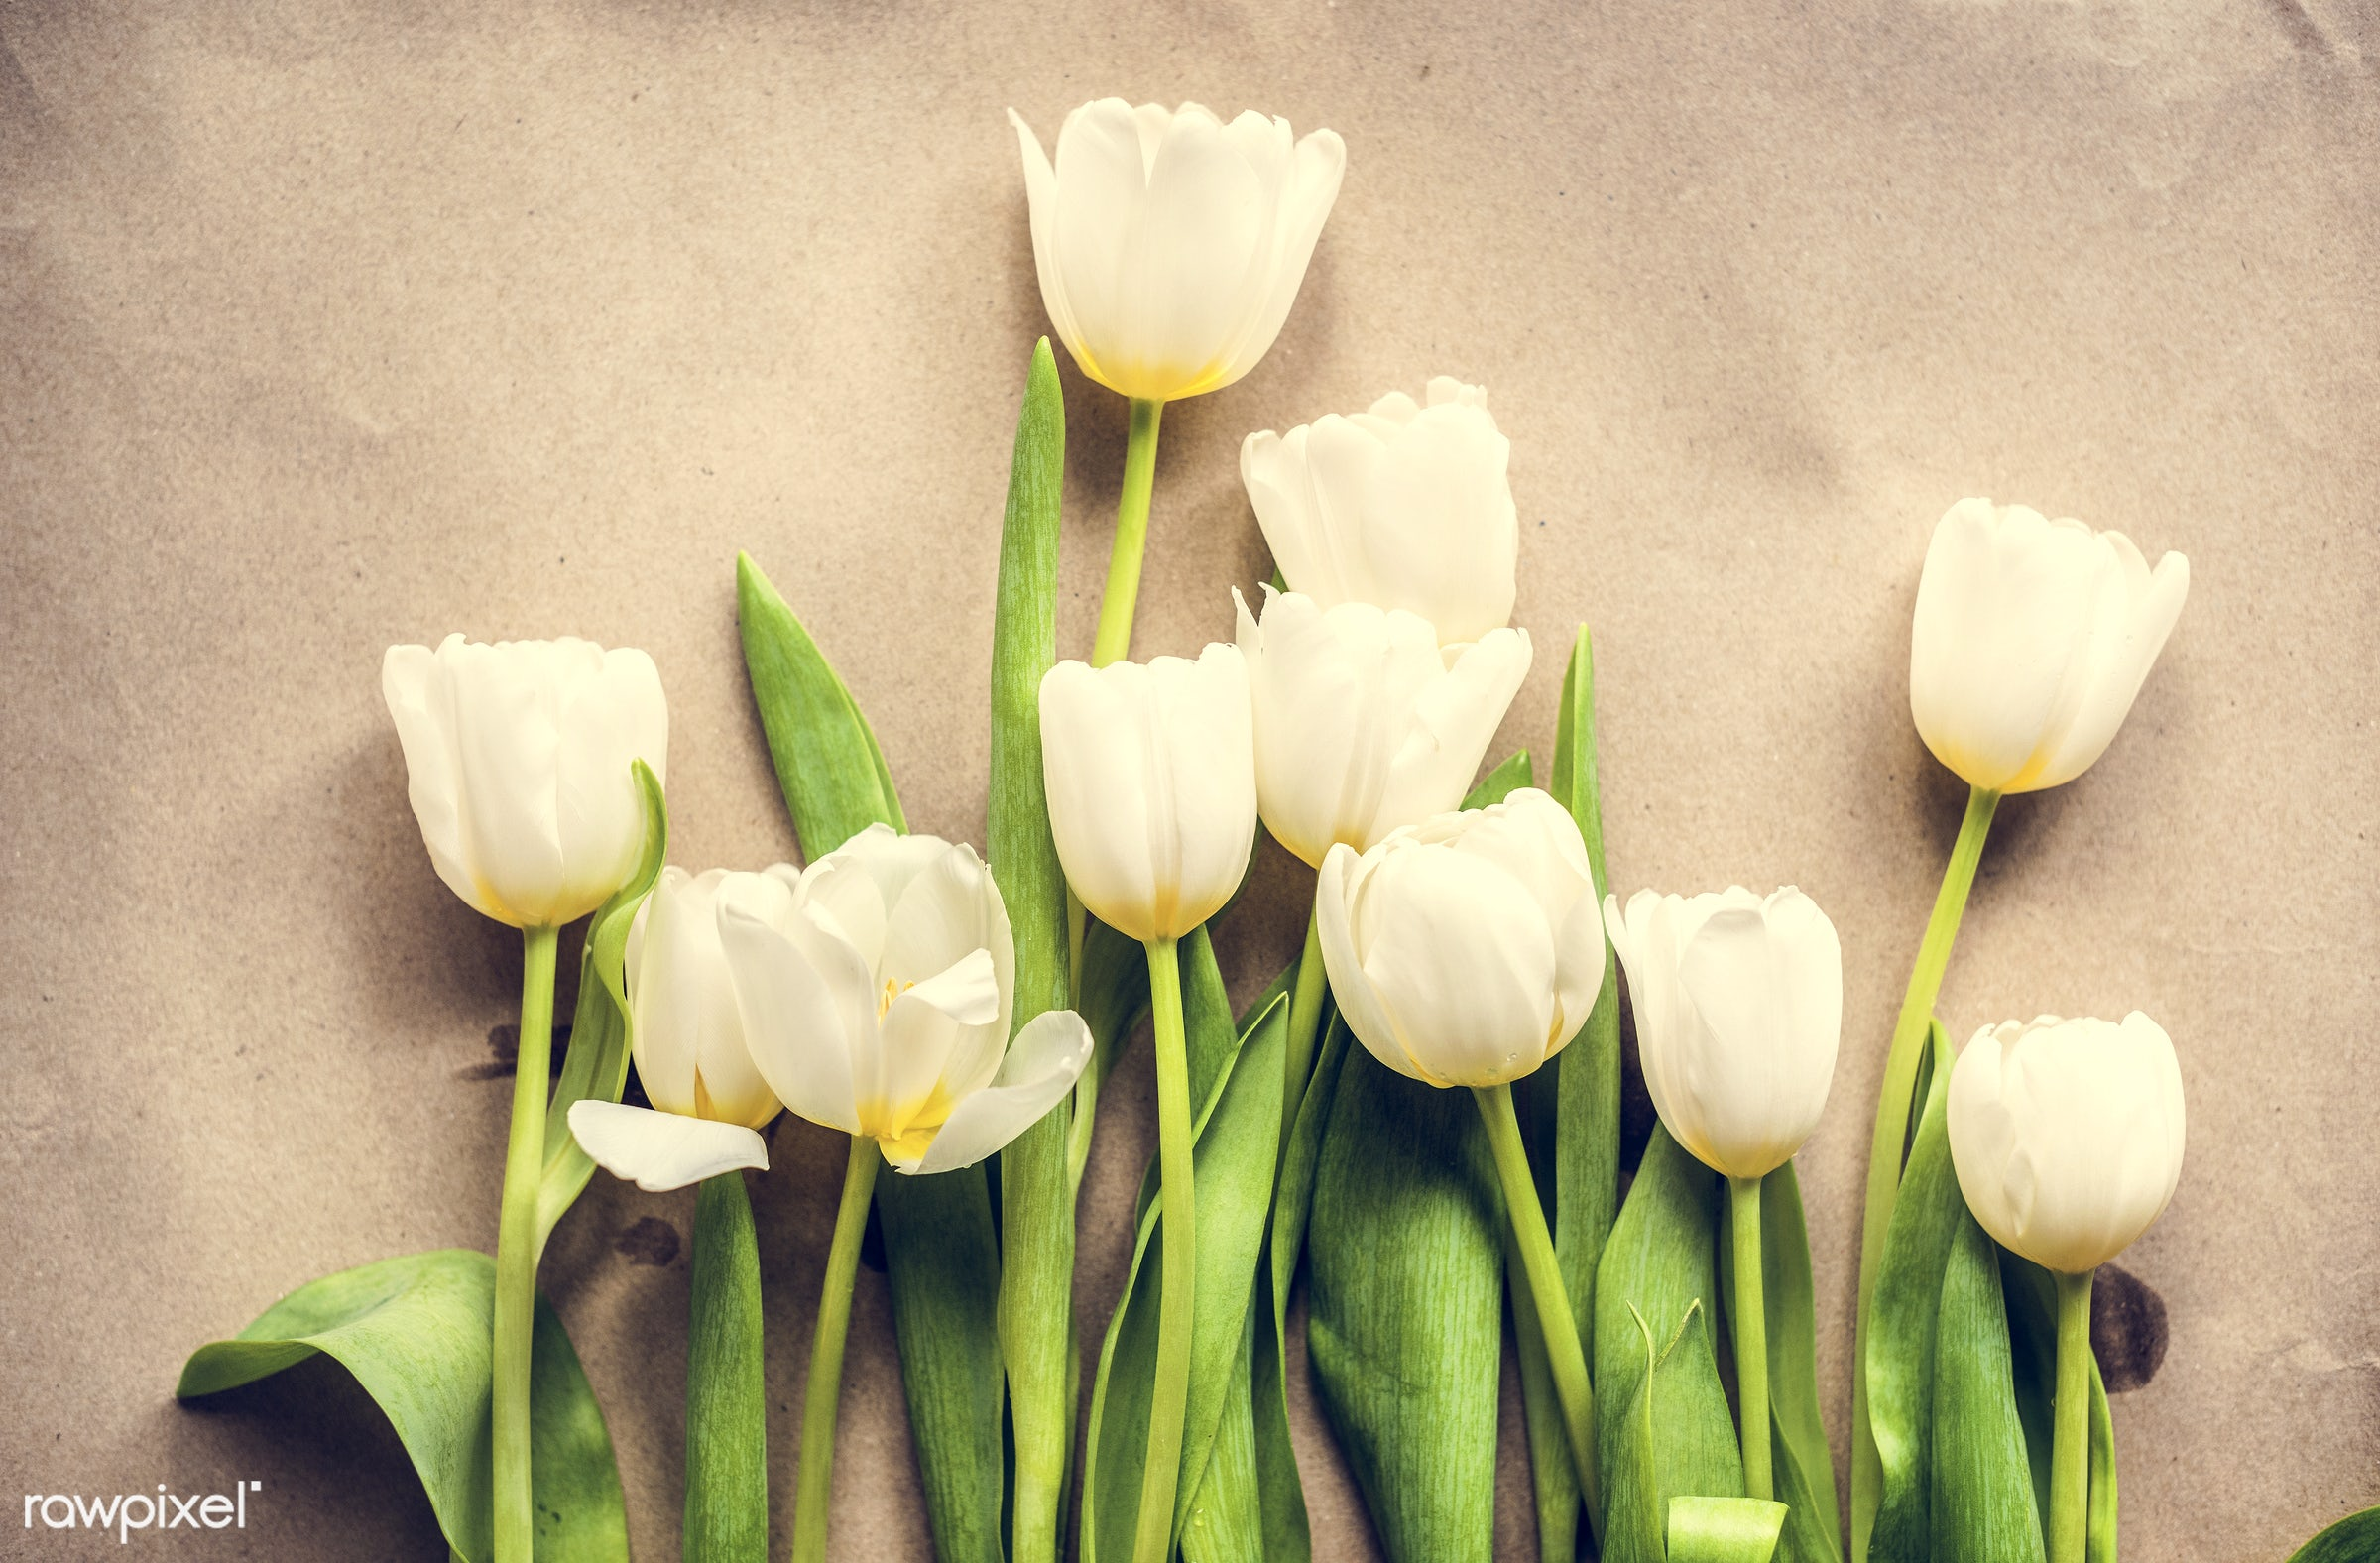 nobody, bouquet, festive, detail, decorative, colorful, paper, events, plants, tulips, leaf, leaves, blossom, craft paper,...